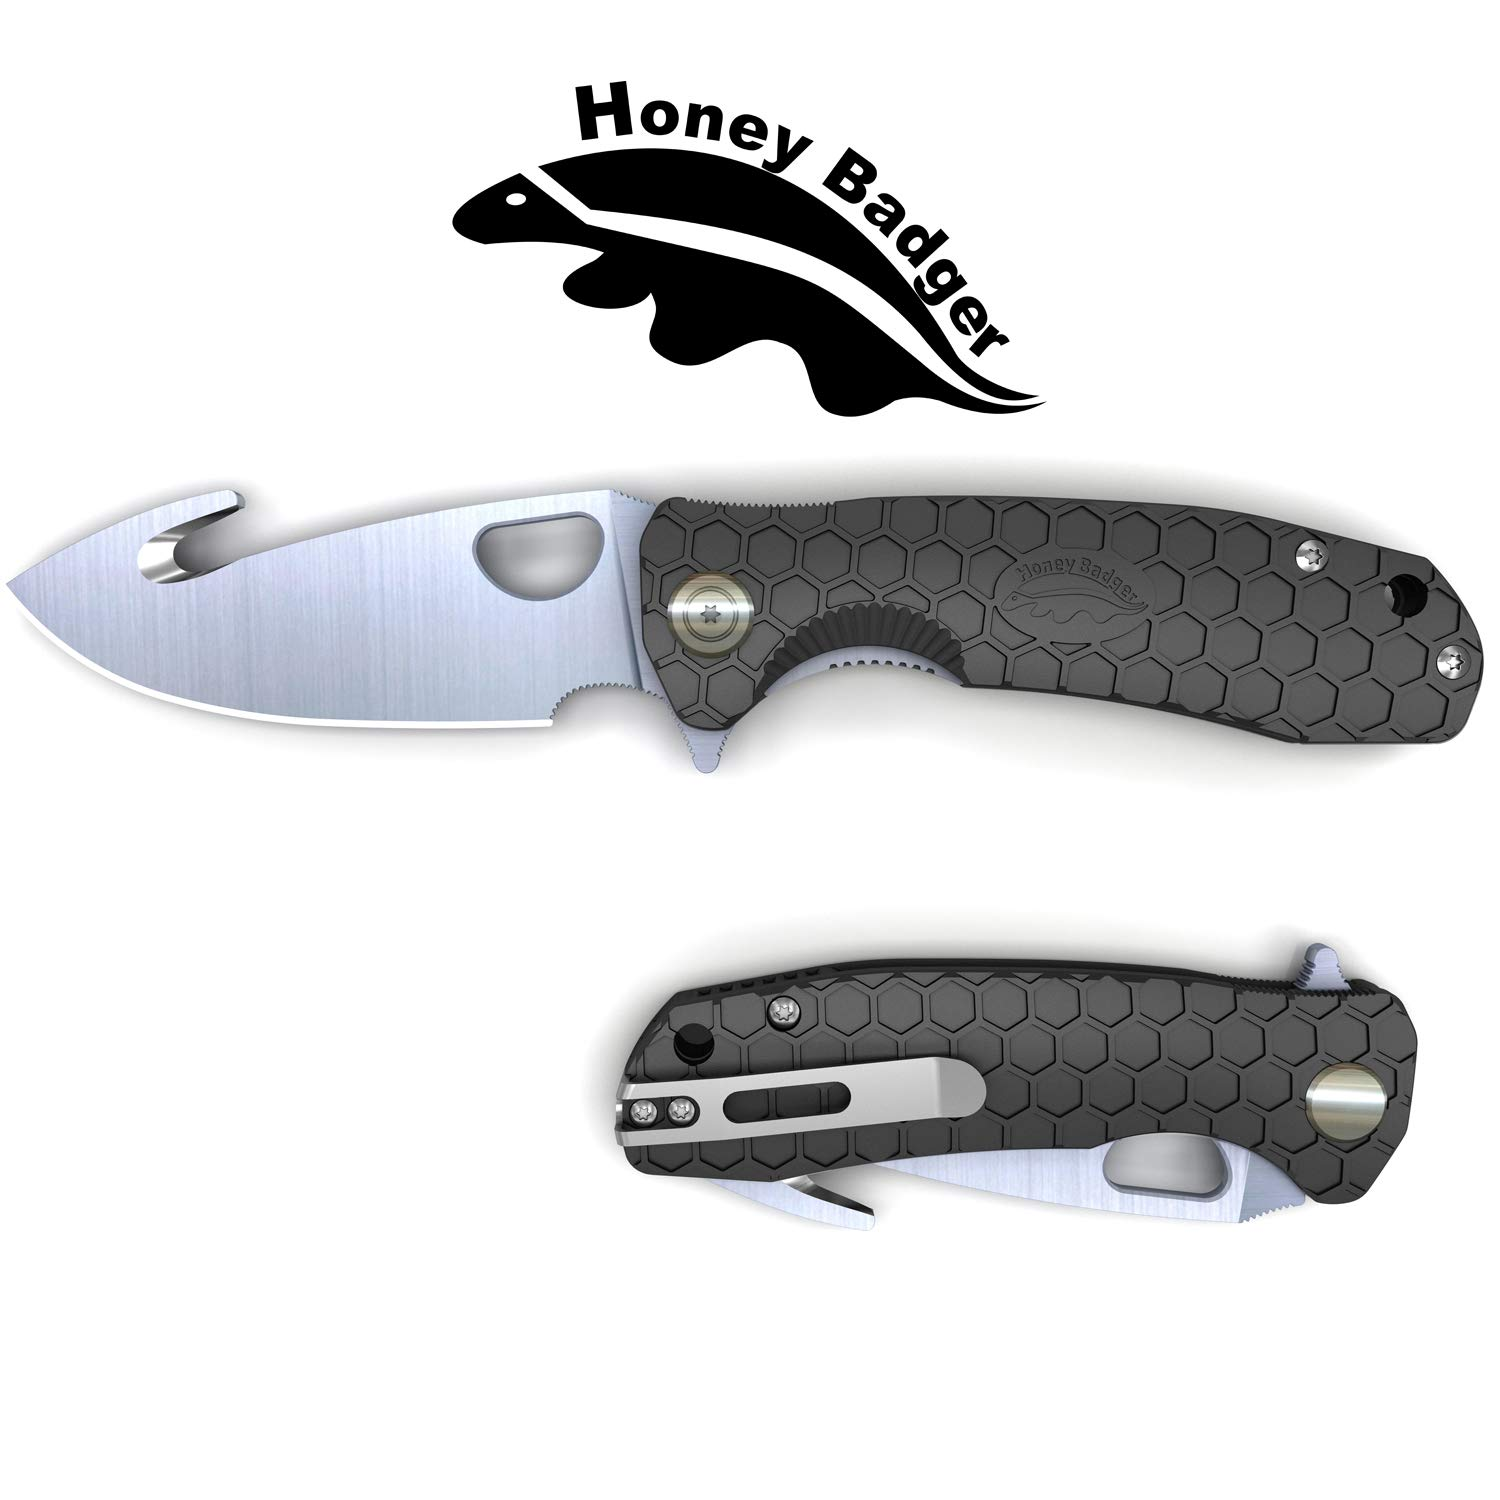 Western Active Honey Badger Flipper Knife Claw and Hook Model Serrated or Smooth Blade (Hook Large Black) by Western Active